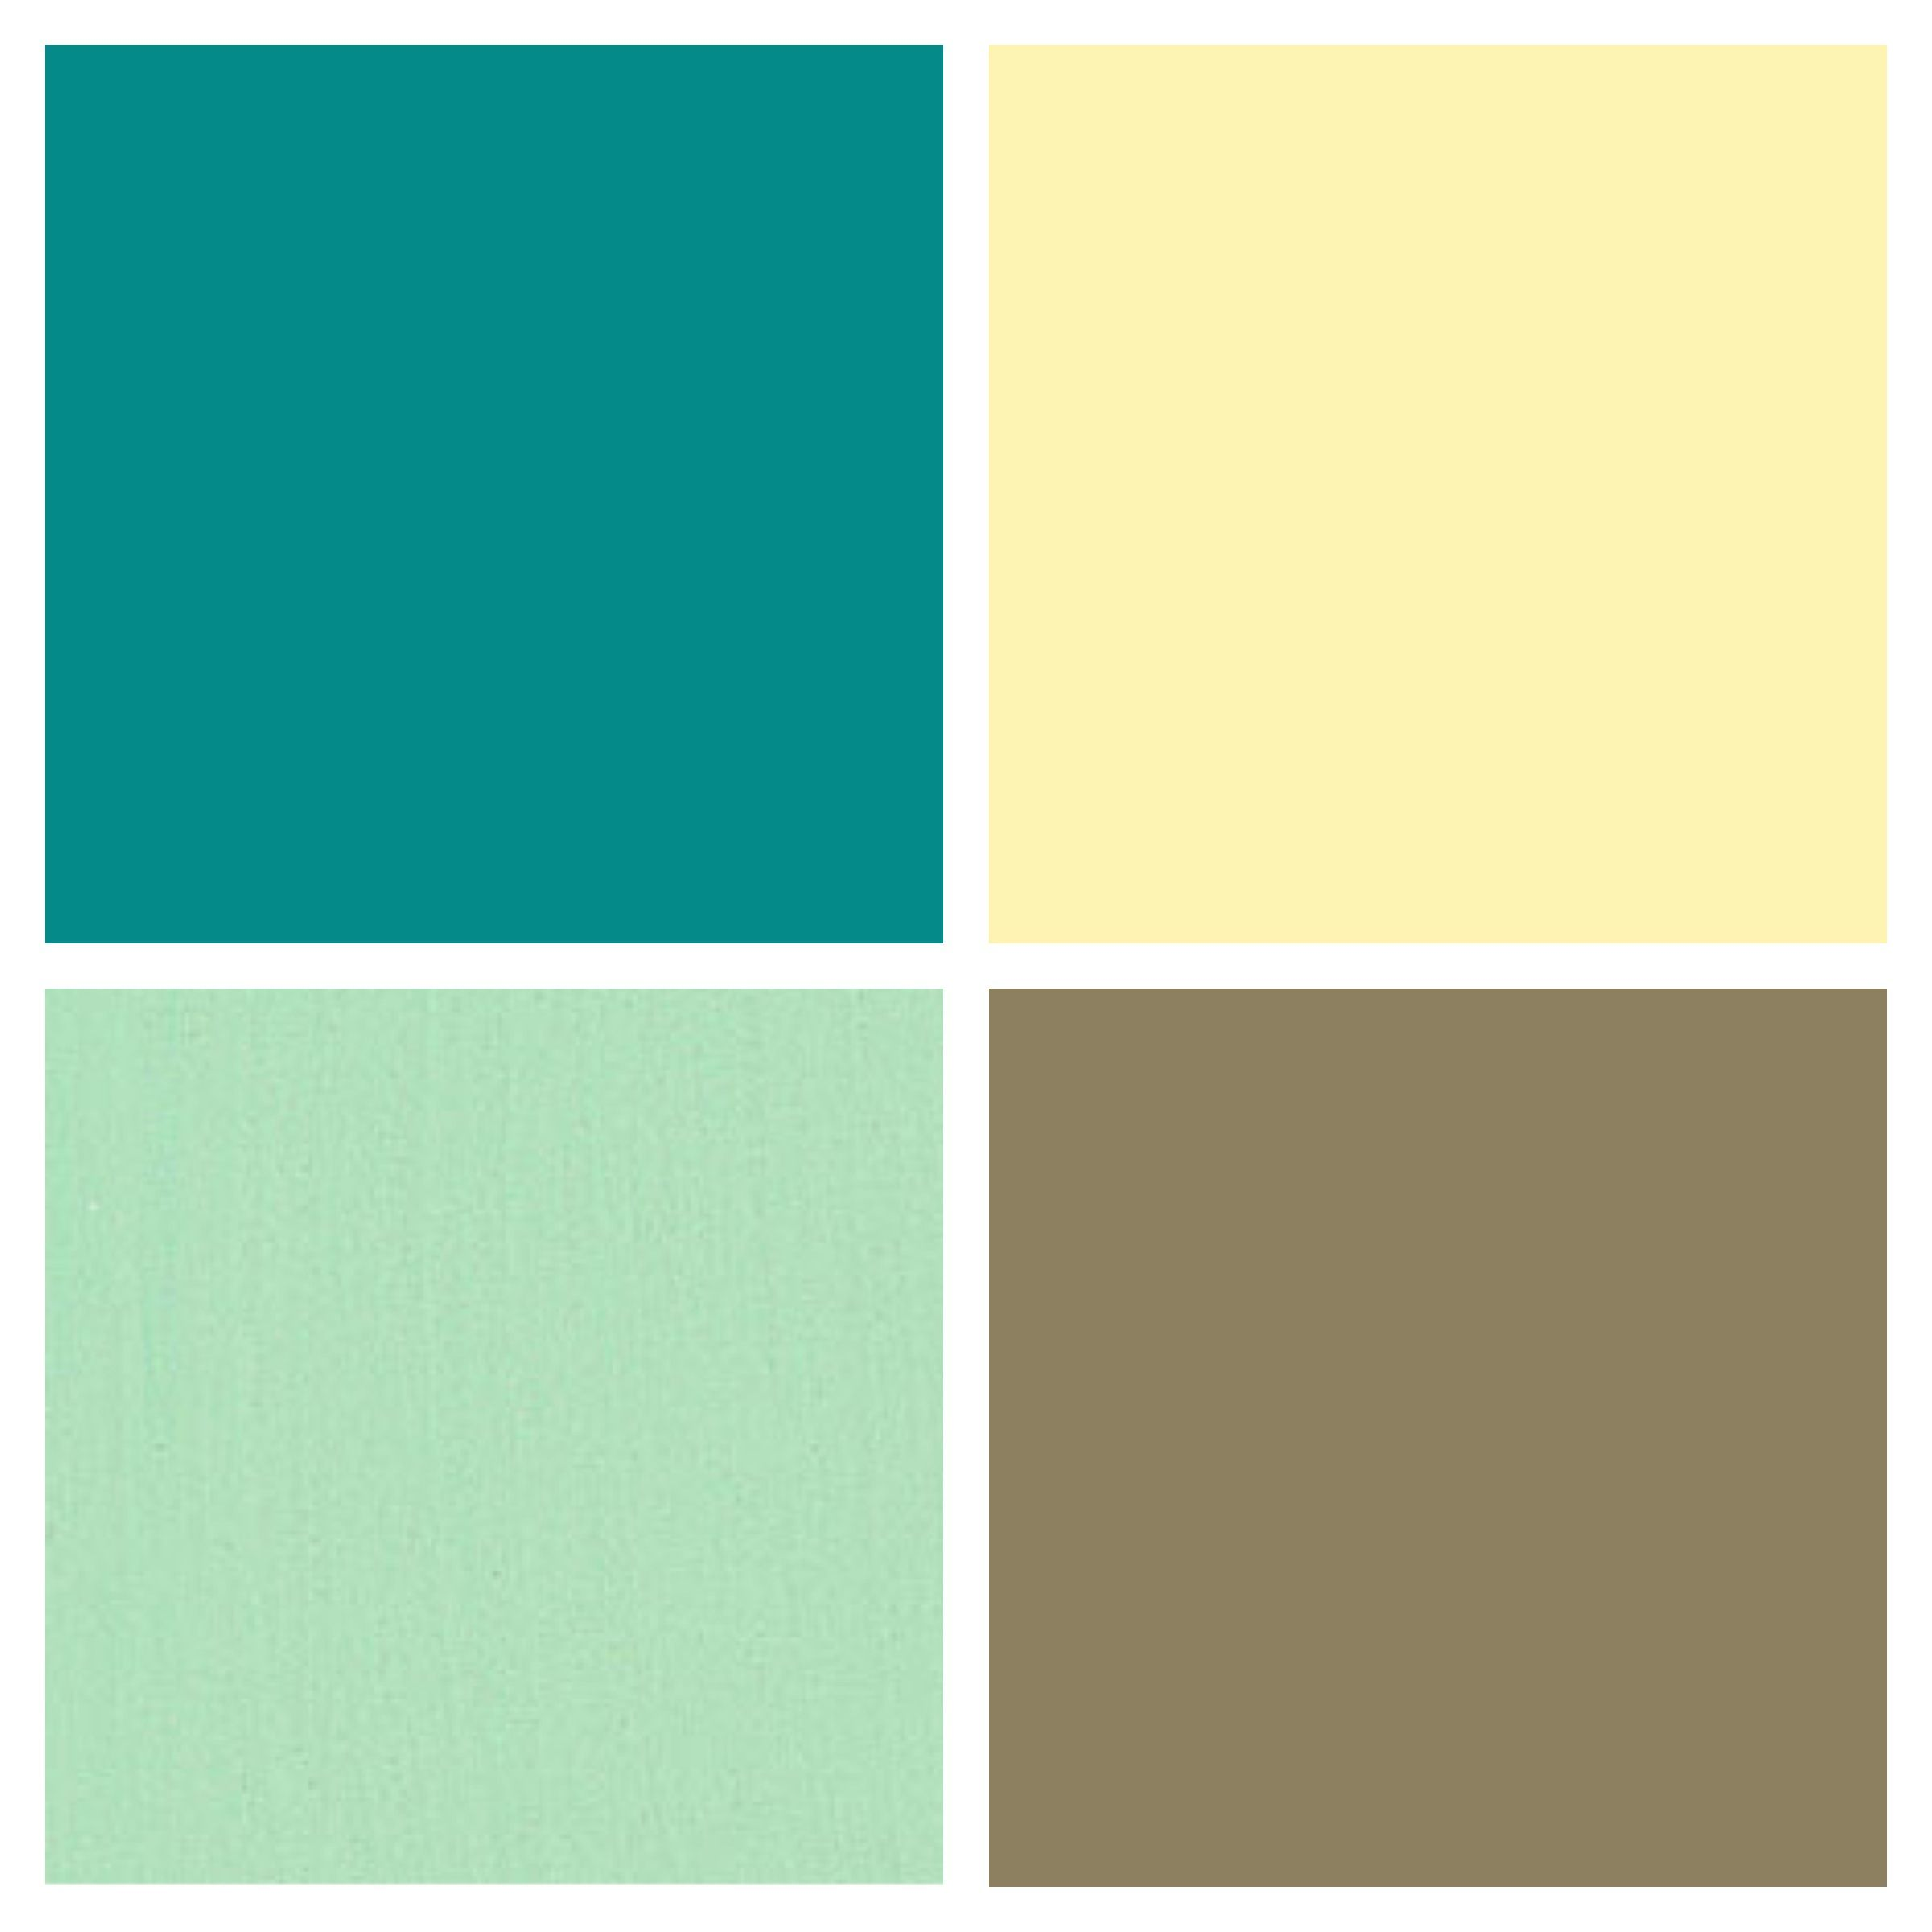 Kitchen color palette- butter / country yellow, mint / seafoam ...